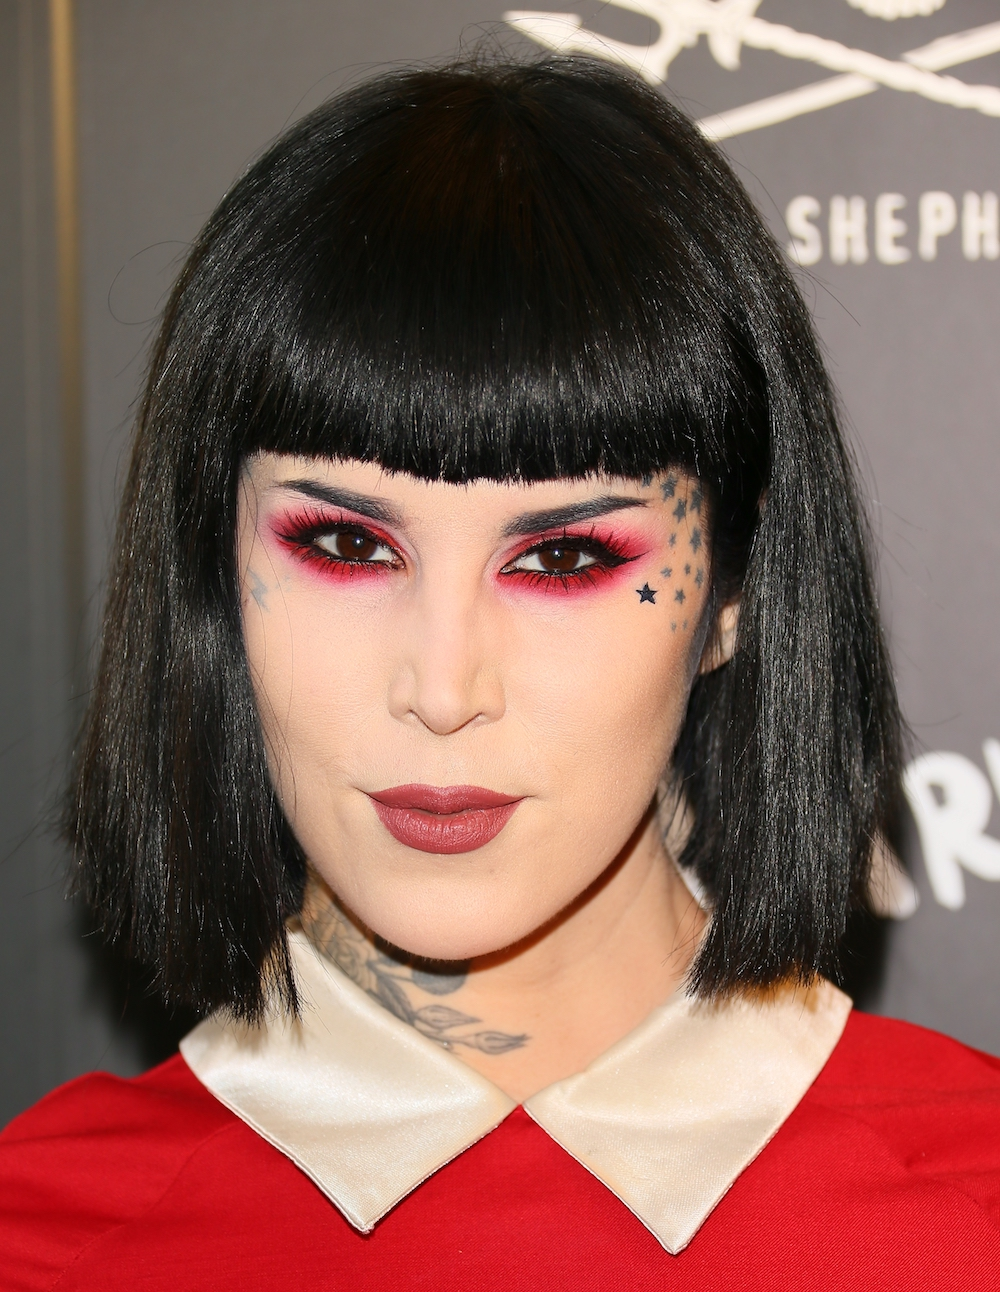 Kat Von D Beauty is launching the perfect nude lipstick set for Sephora's Everlasting Flash Sale